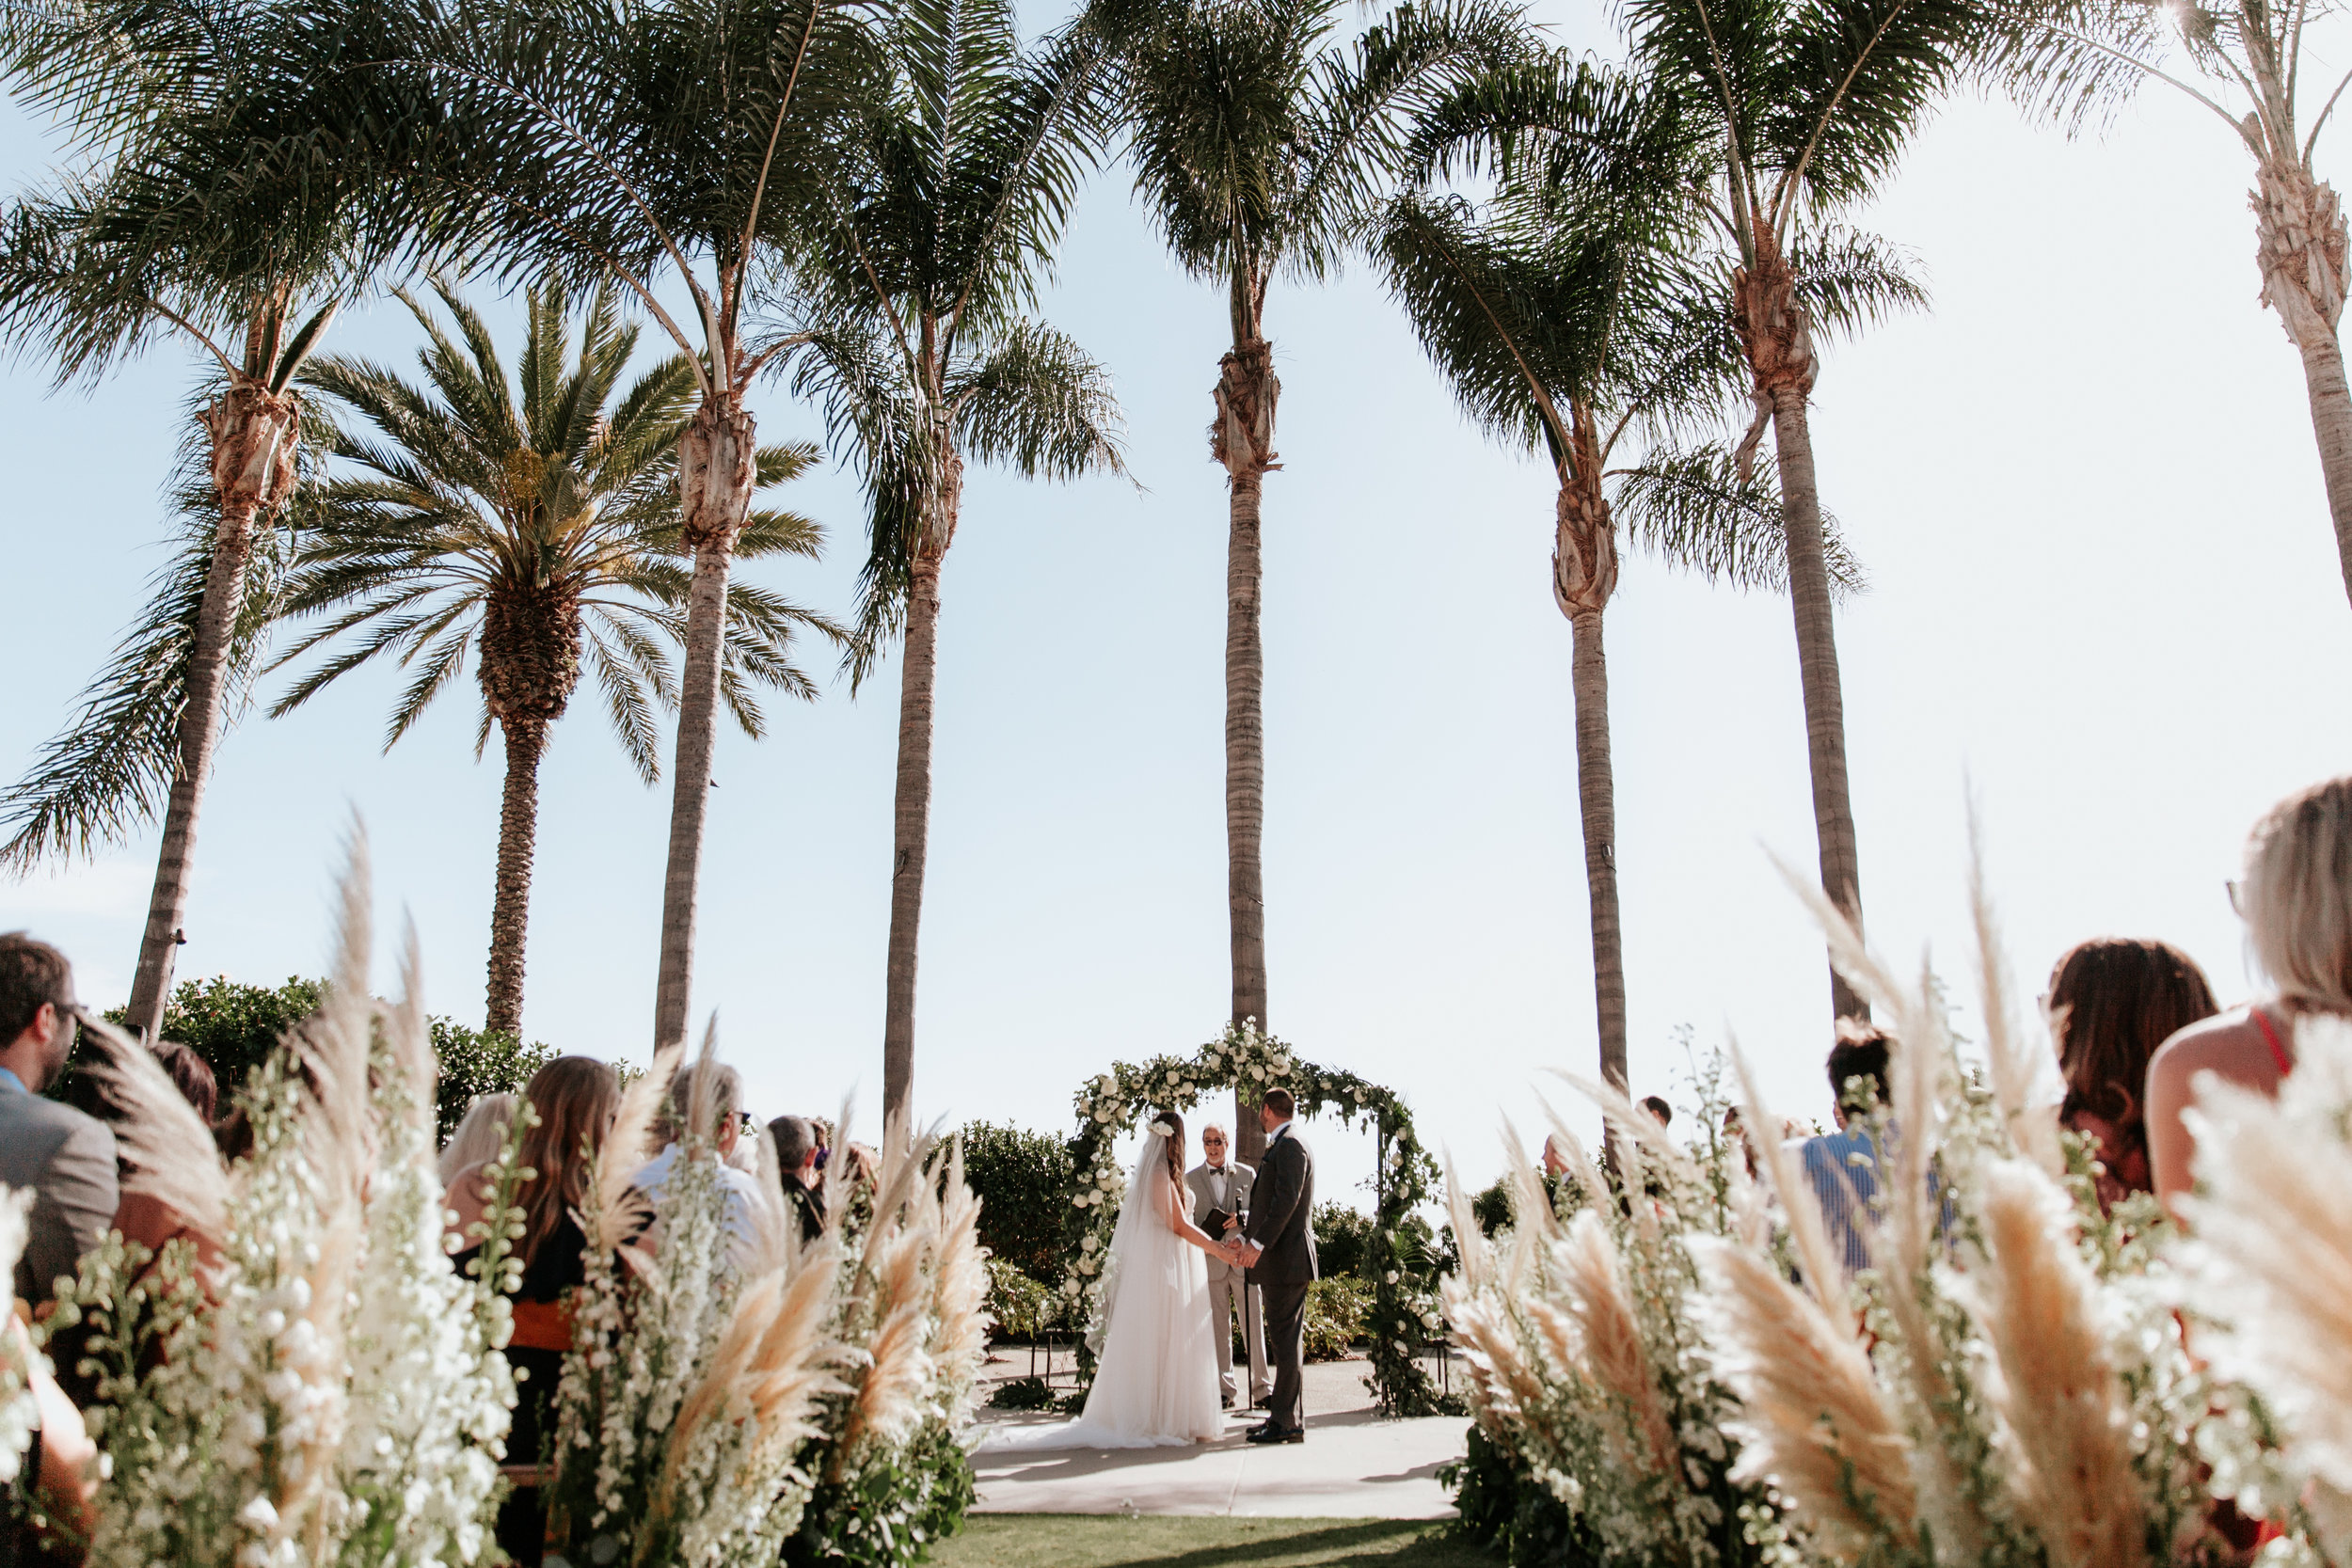 Elegant Boho Wedding | Park Hyatt Aviara | San Diego Wedding | Tiana Loyd-Michelle Garibay Events | Paige Nelson Photography